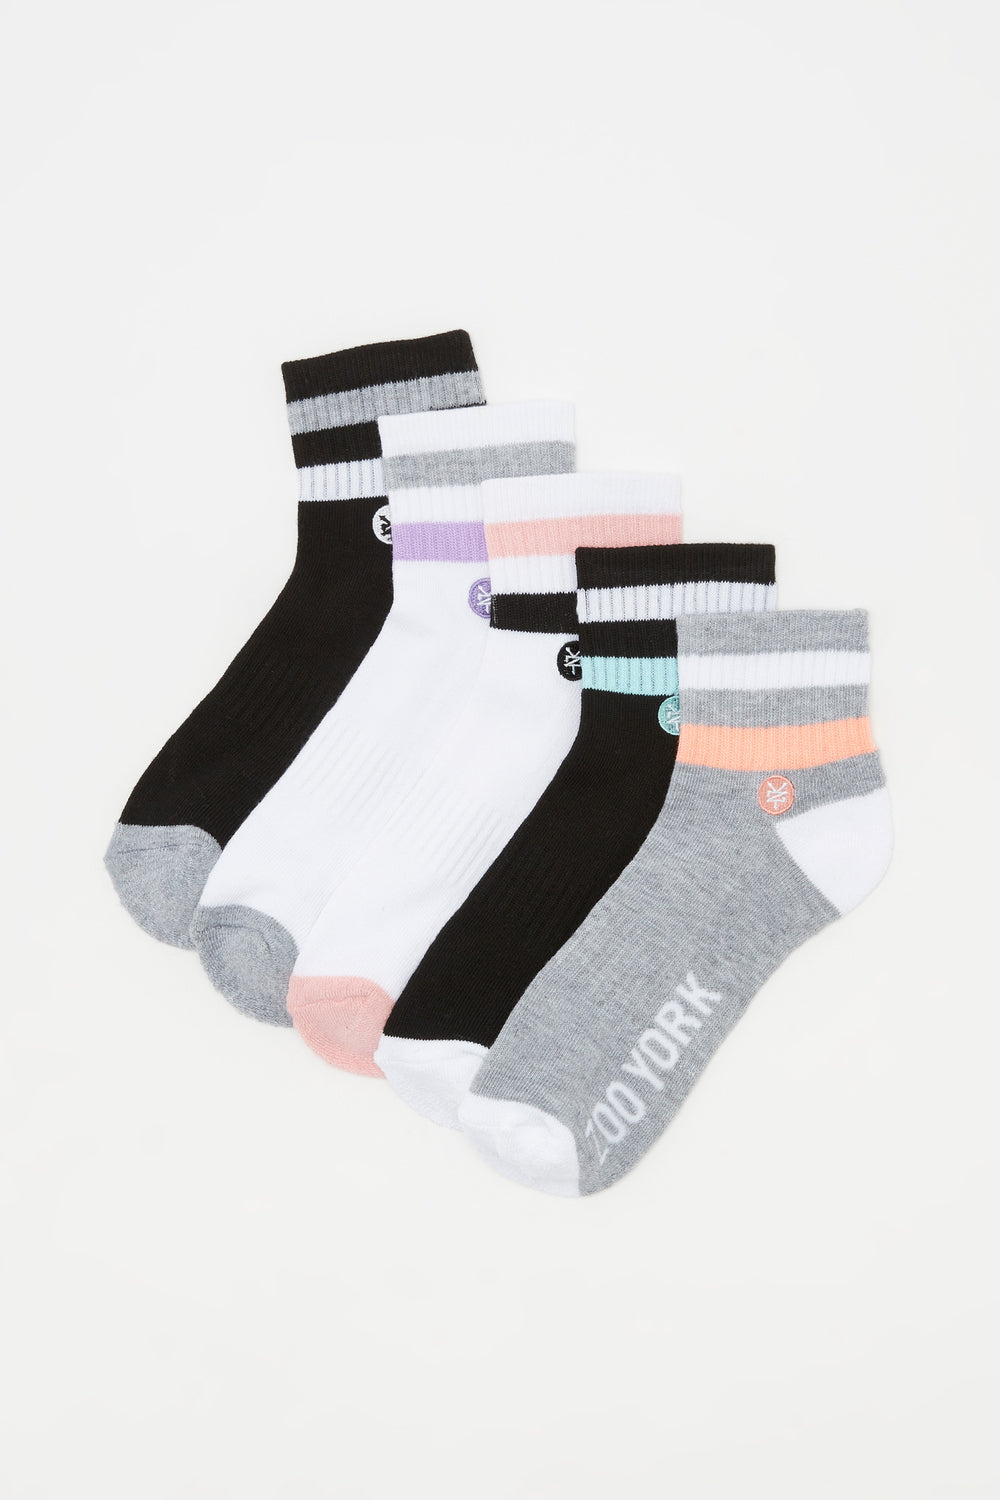 Zoo York Womens Ankle Socks (5 Pairs) Multi